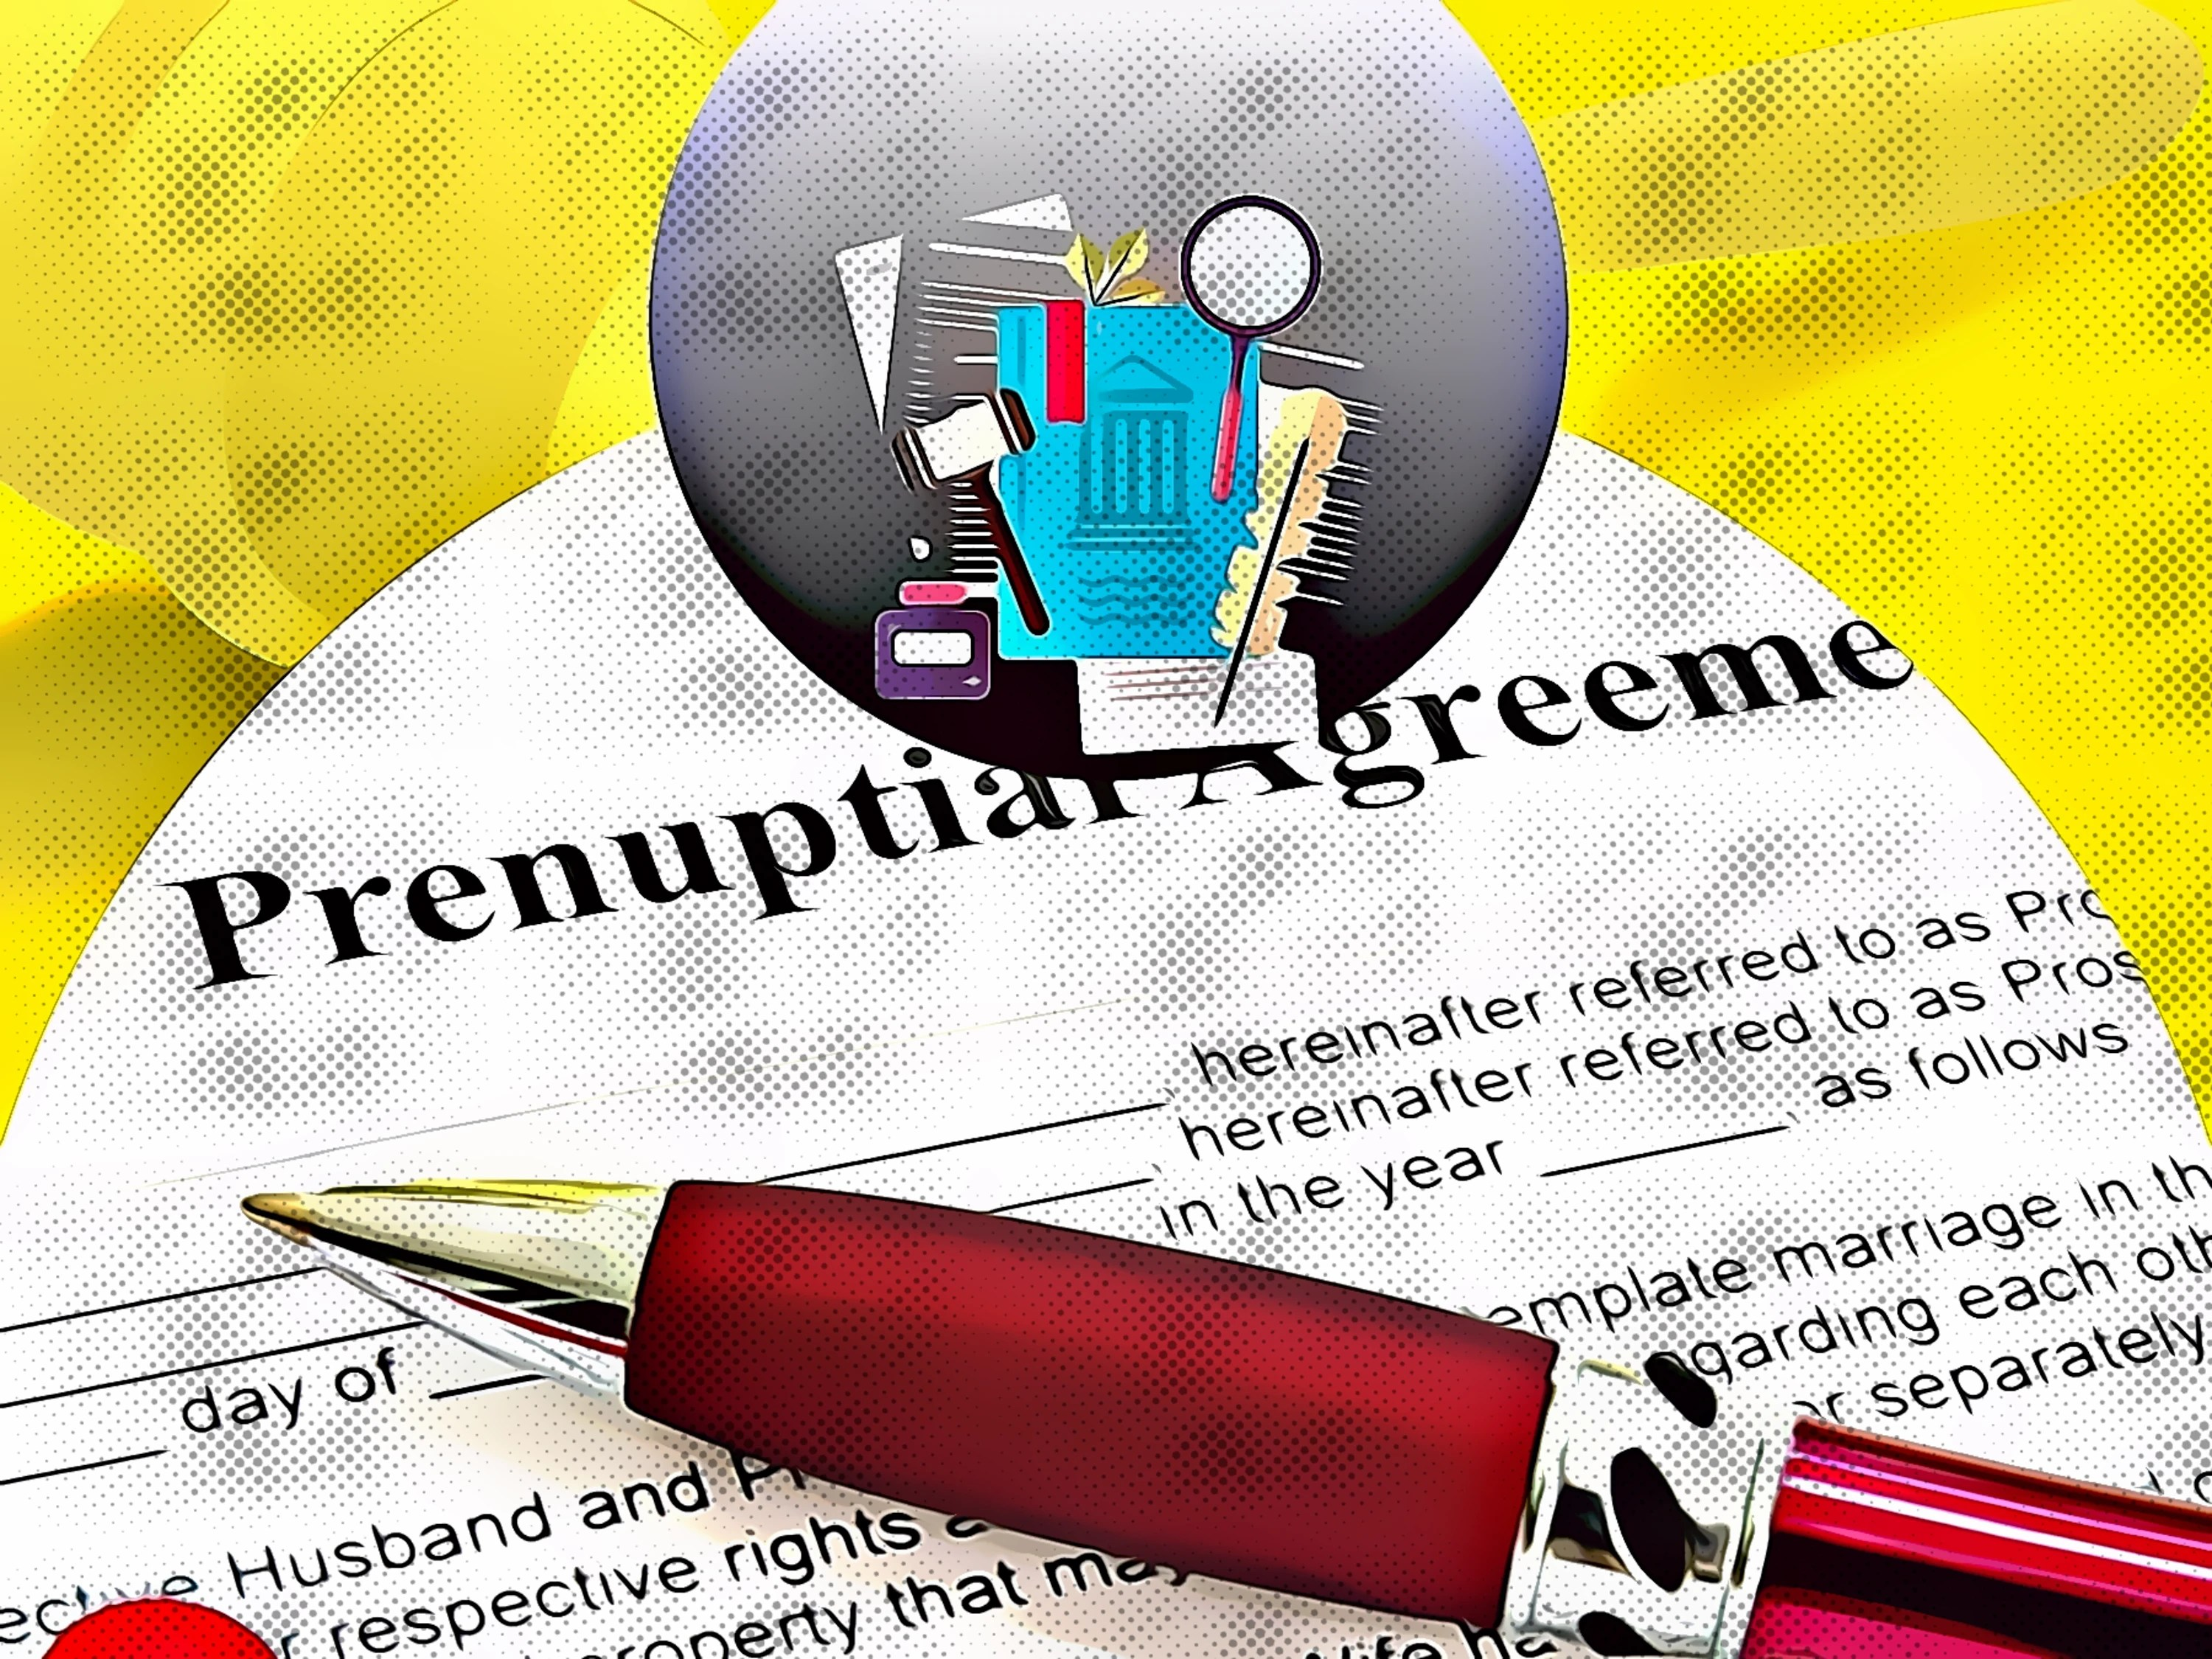 From the legal perspective on prenuptial agreement